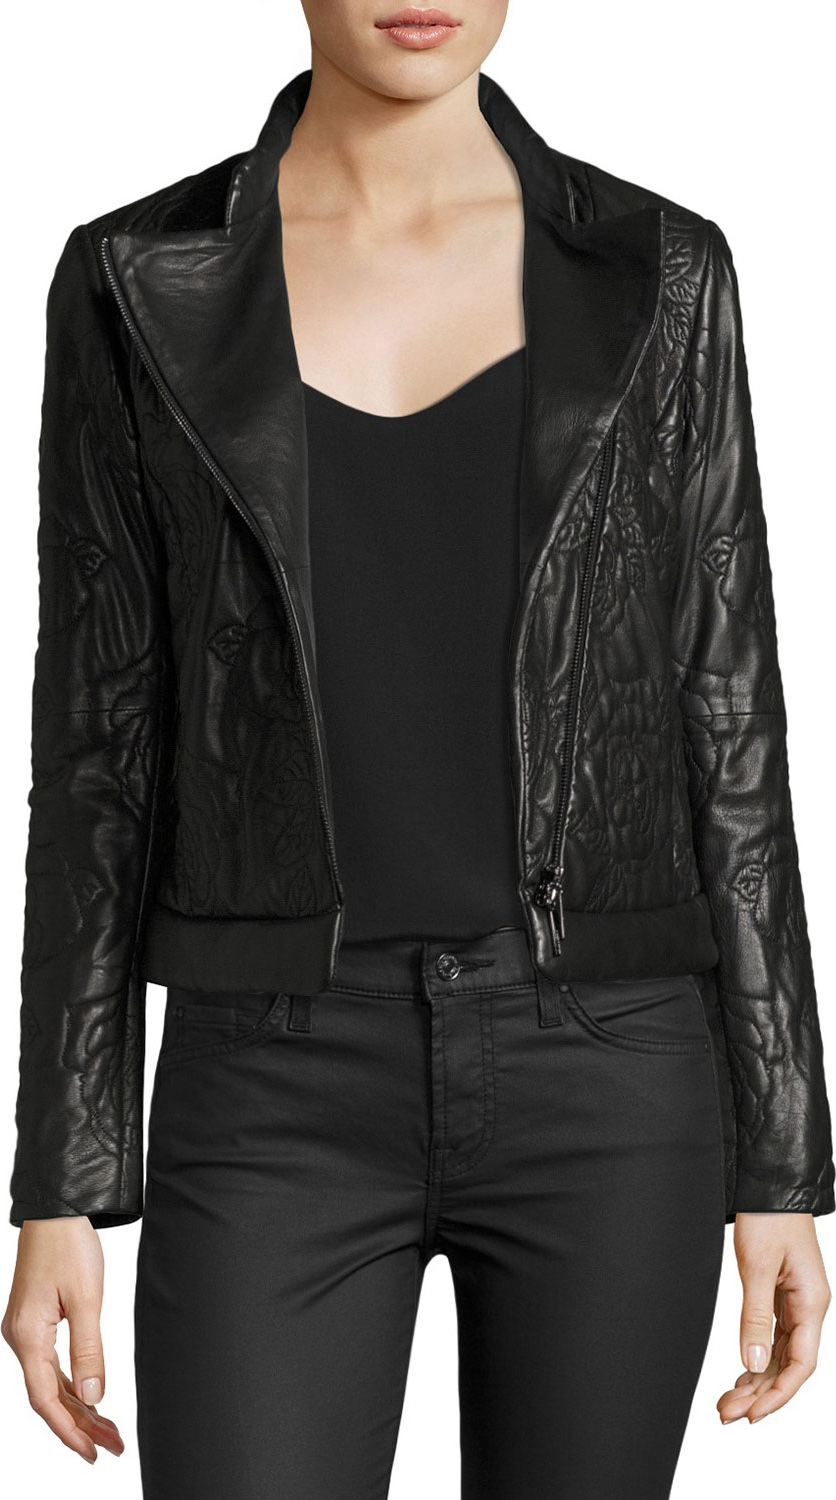 Armani Jeans - Floral-Quilted Leather Moto Jacket, Black